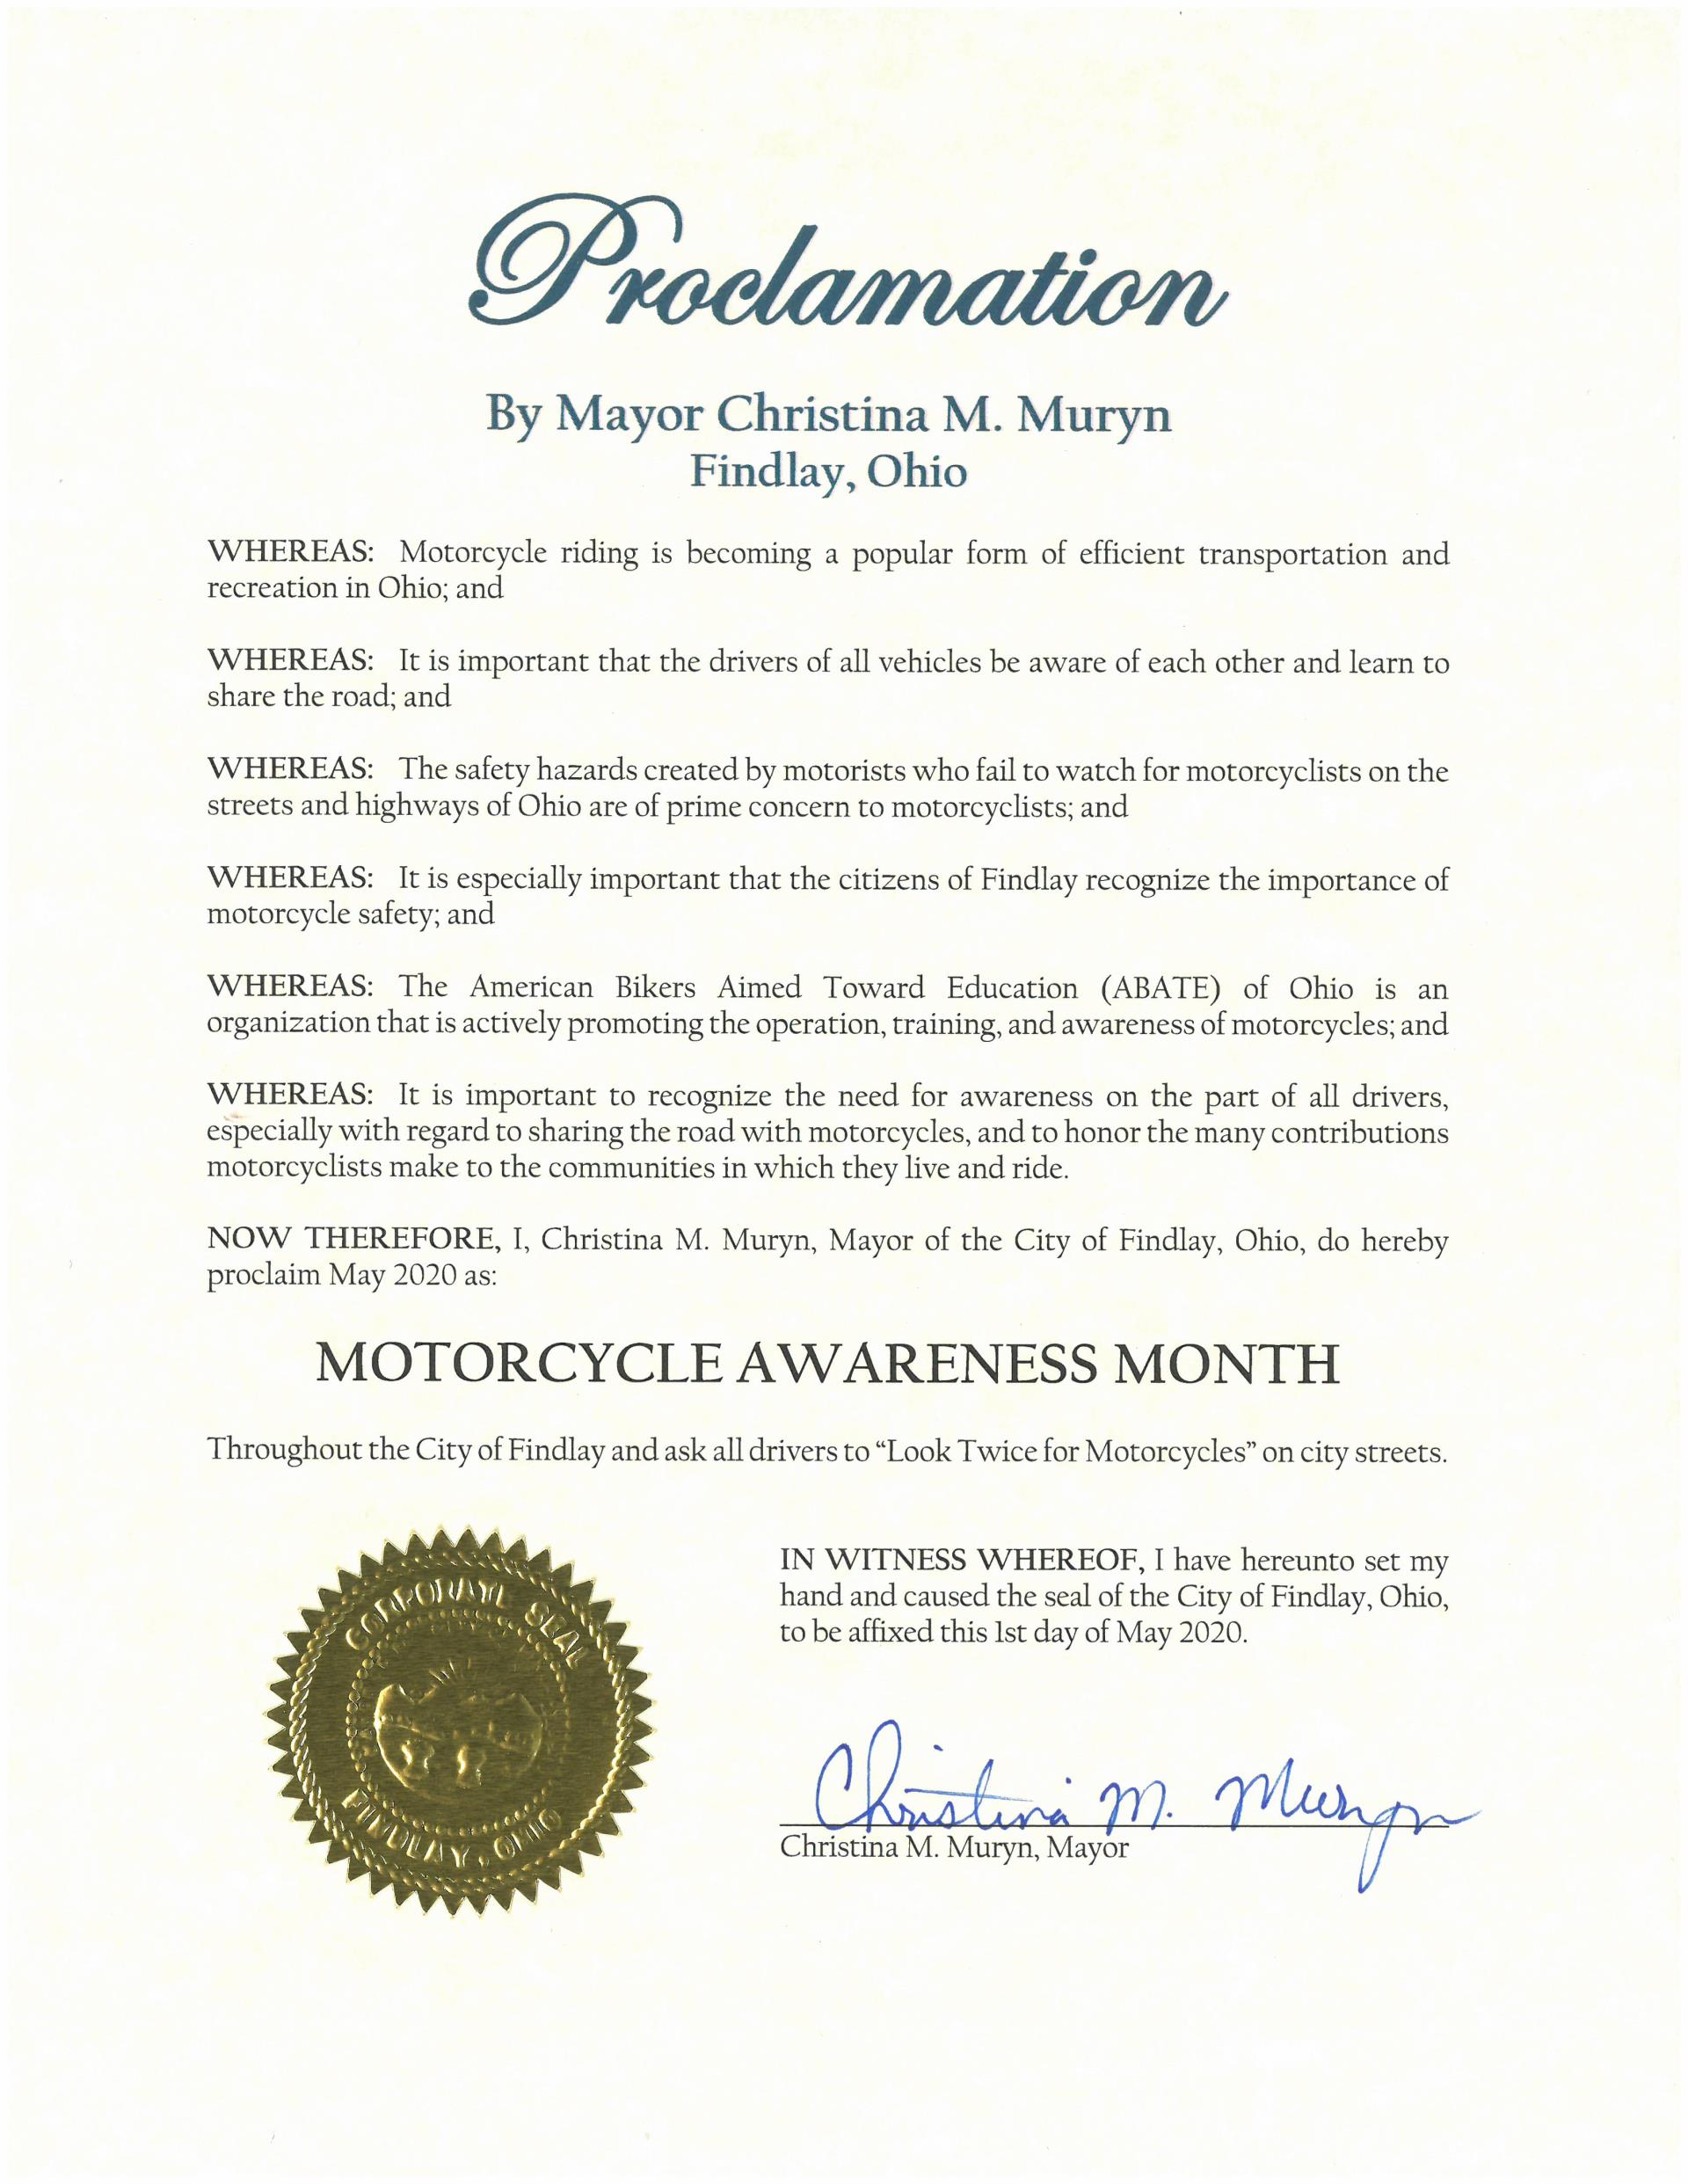 2020.05.Motorcycle Awareness Month Proclamation